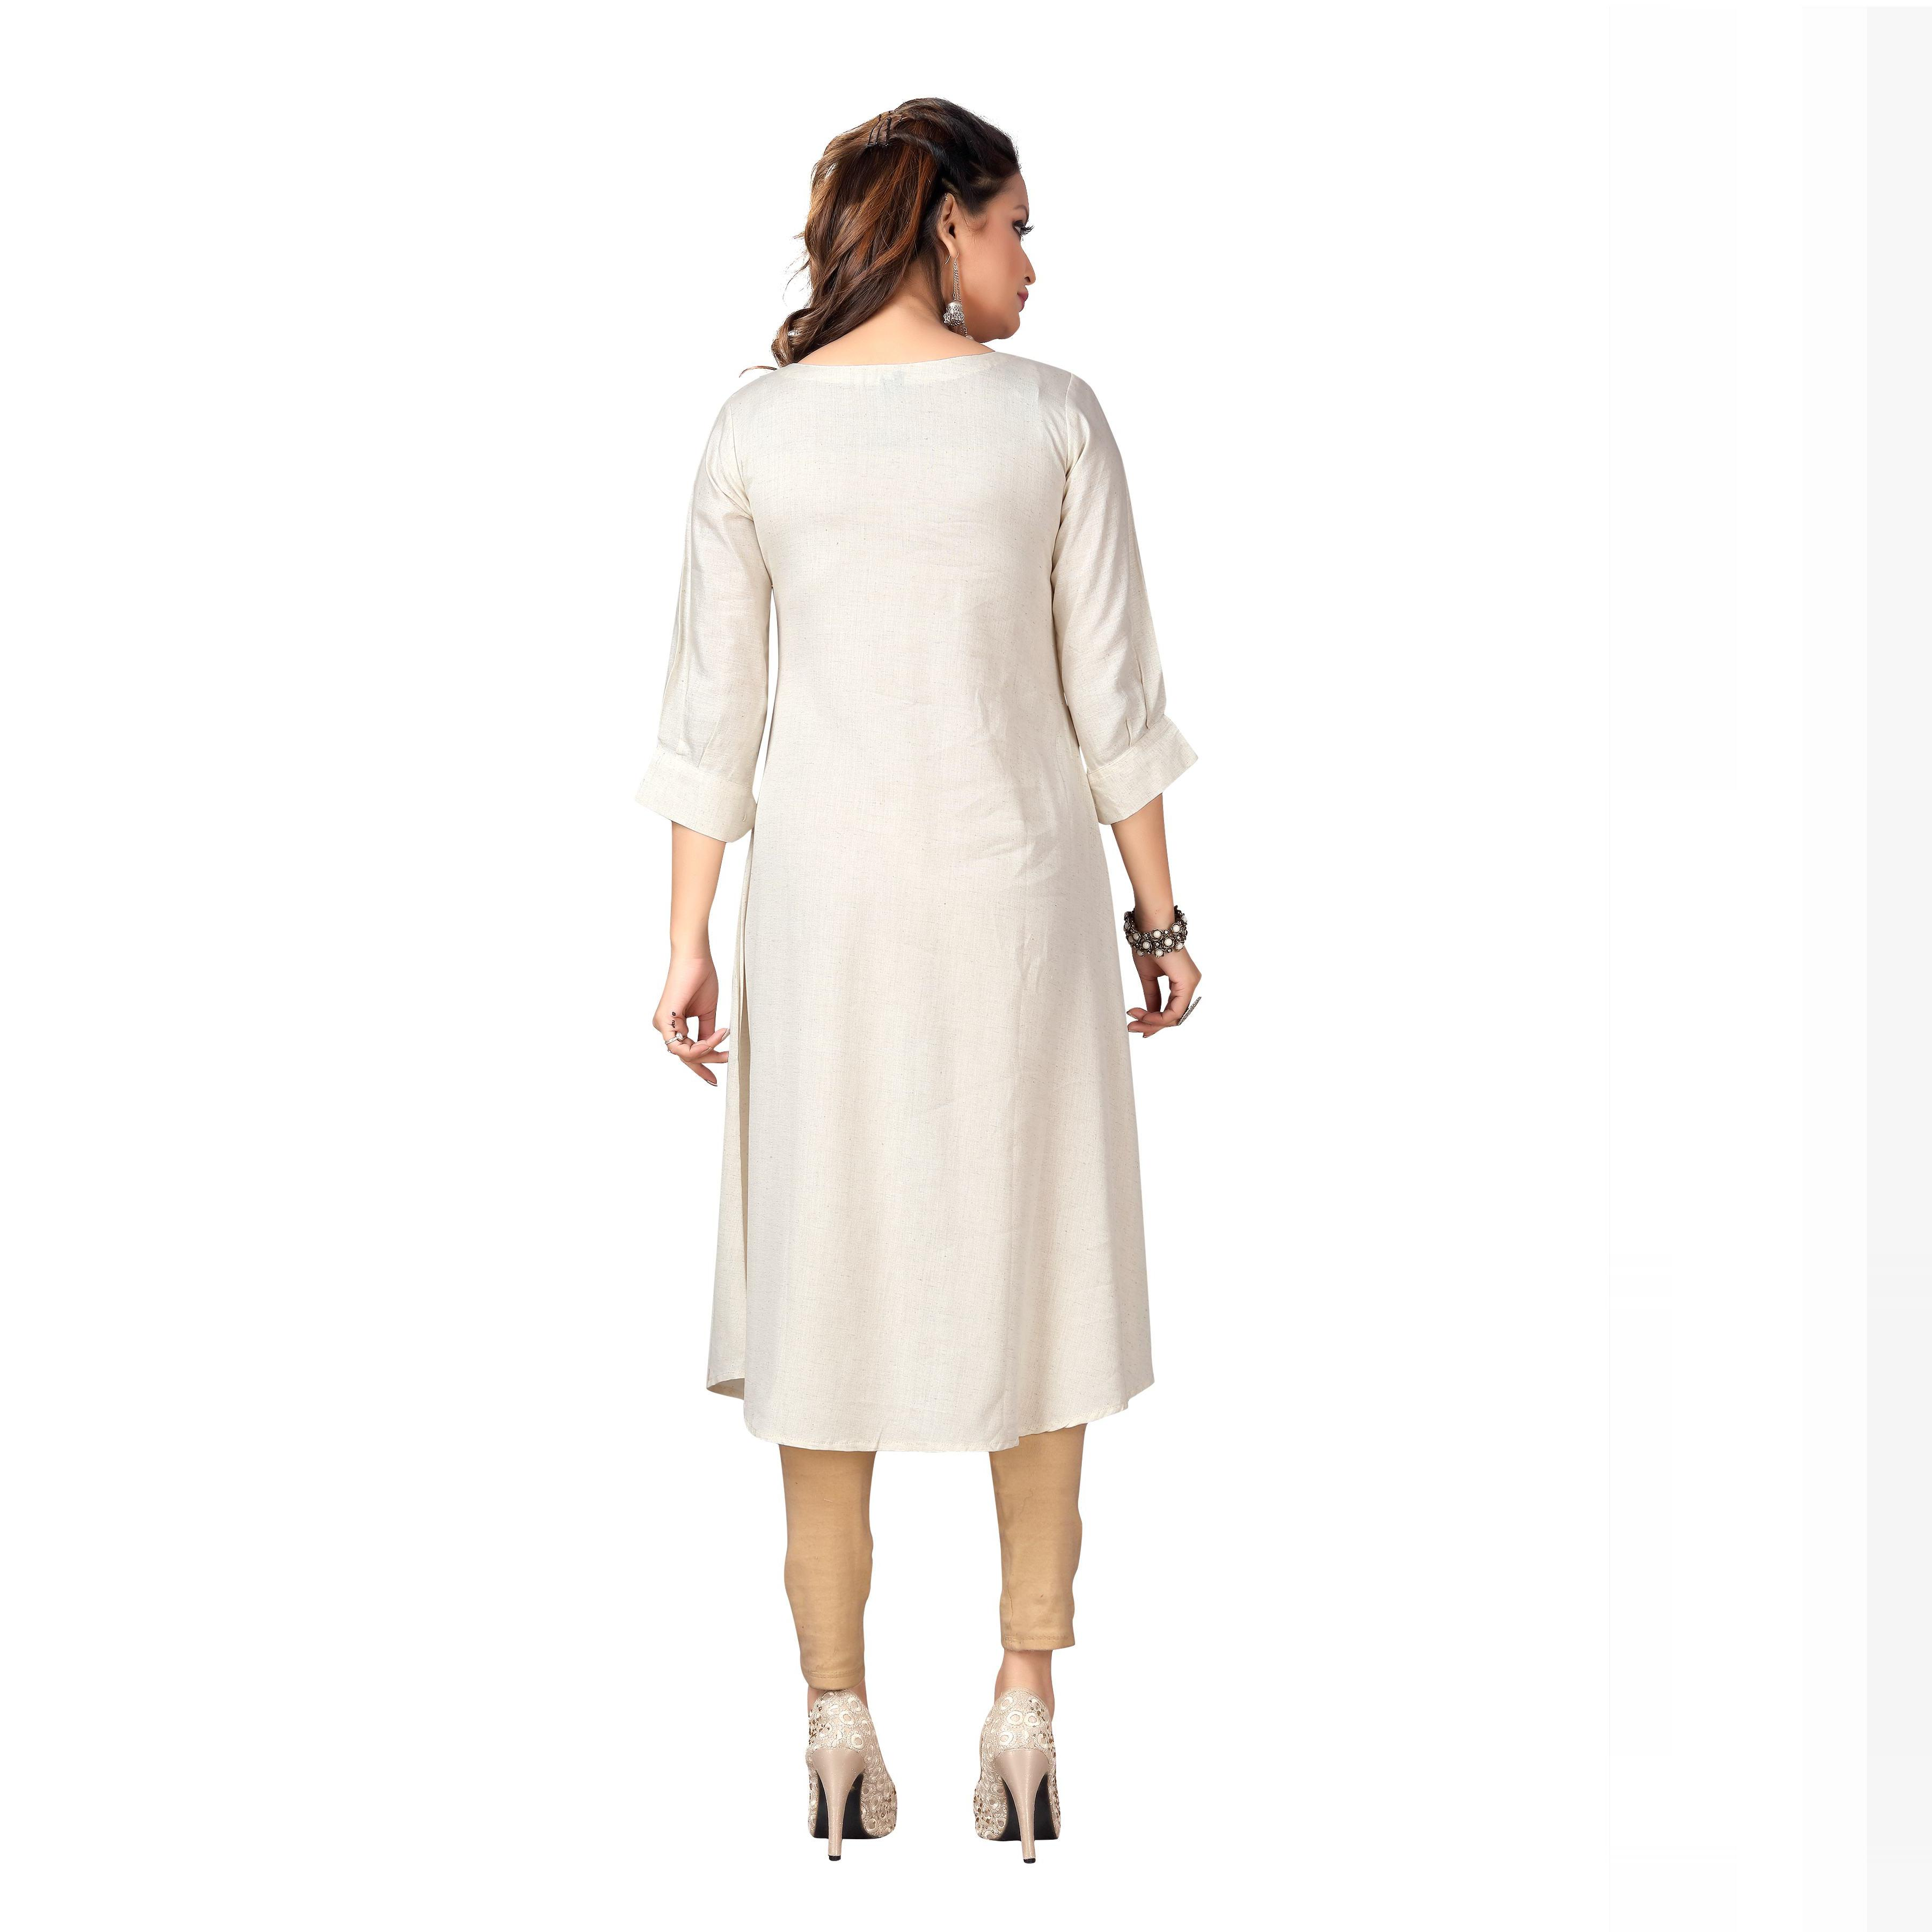 MAJESTIN Ladies Off-White Colored Casual Embroidered Knee Length Rayon Cotton Kurti